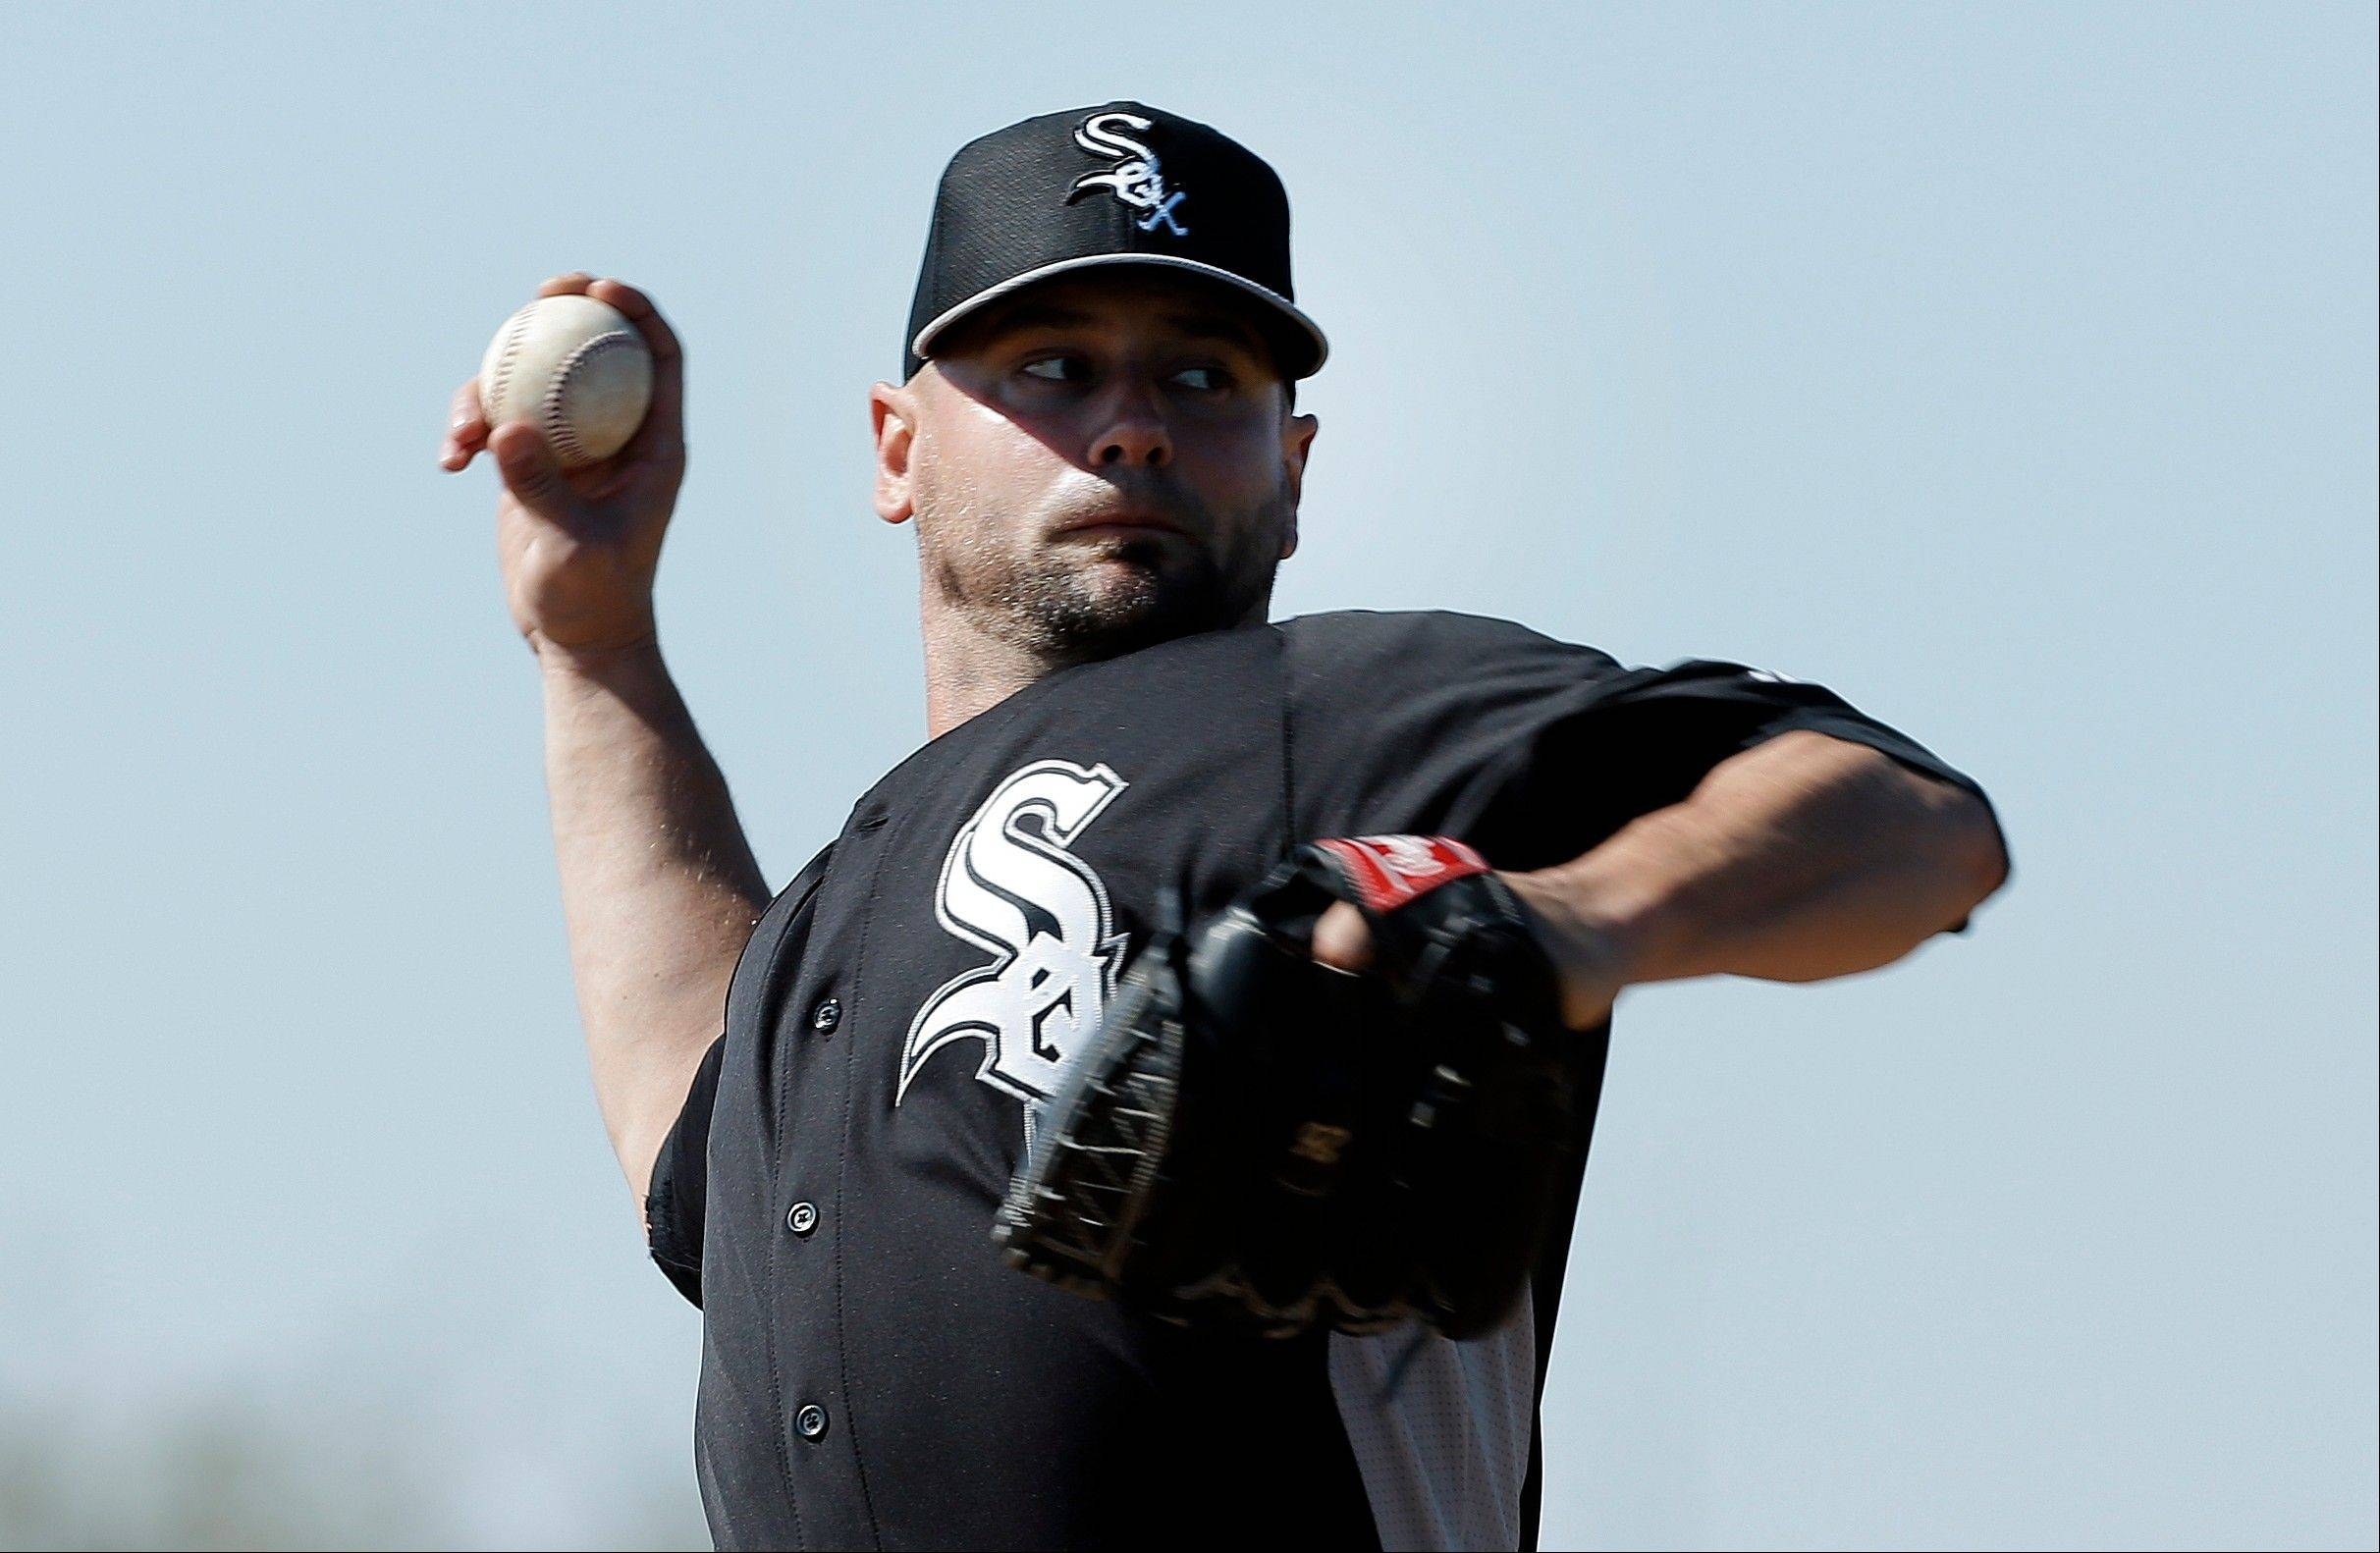 White Sox relief pitcher Jesse Crain, suffering from a strained right adductor, could start the season on the disabled list.